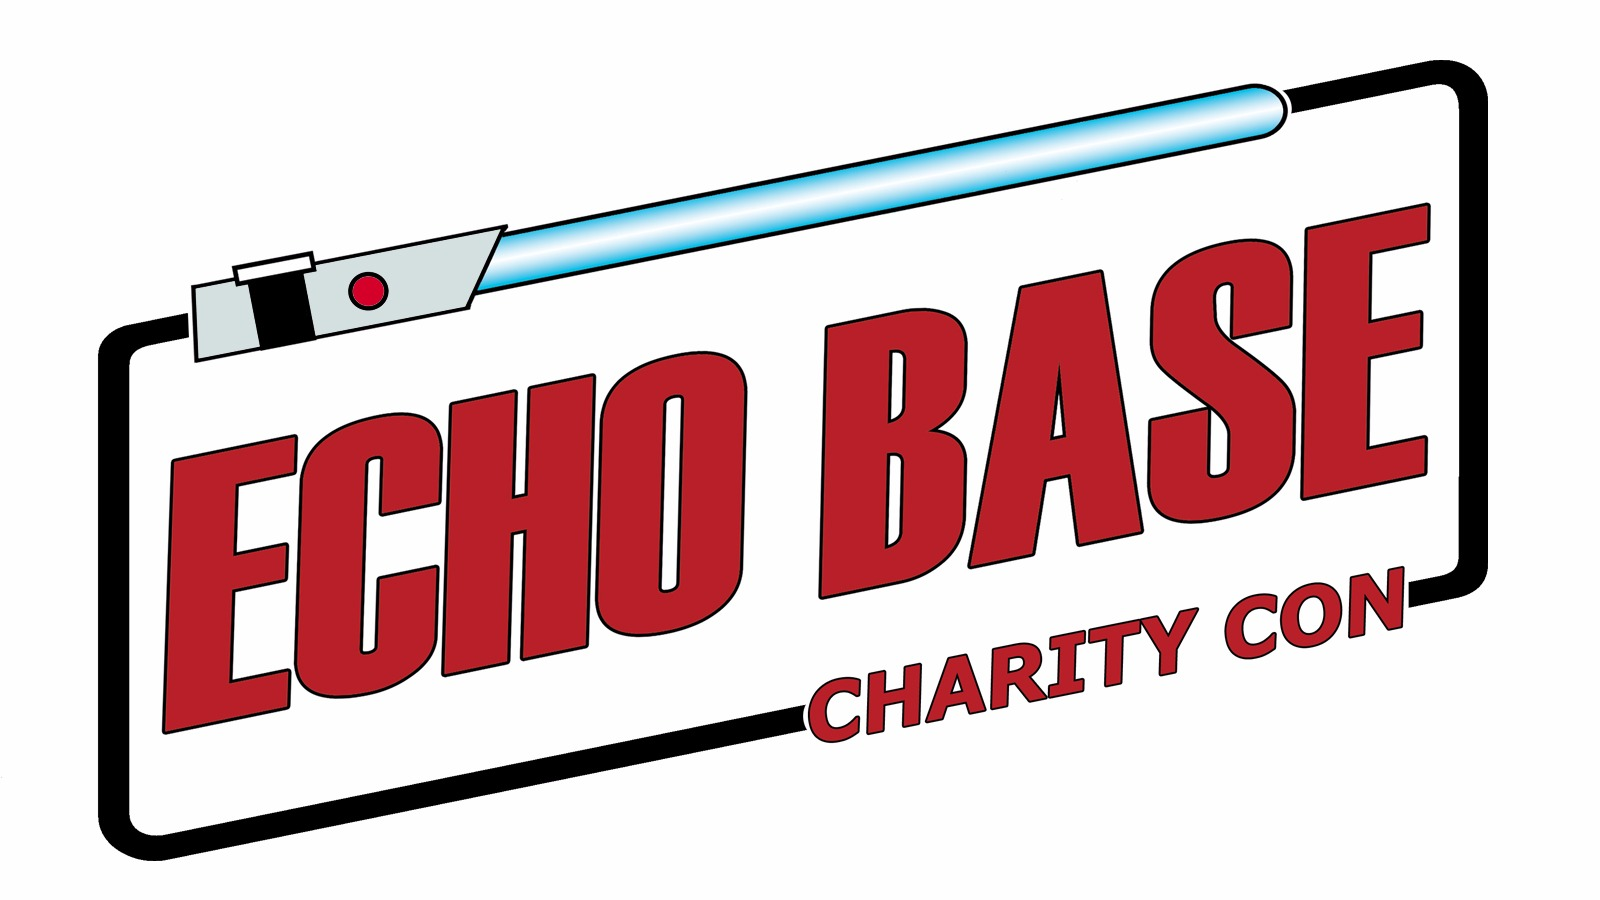 Echo Base Charity Con 2019